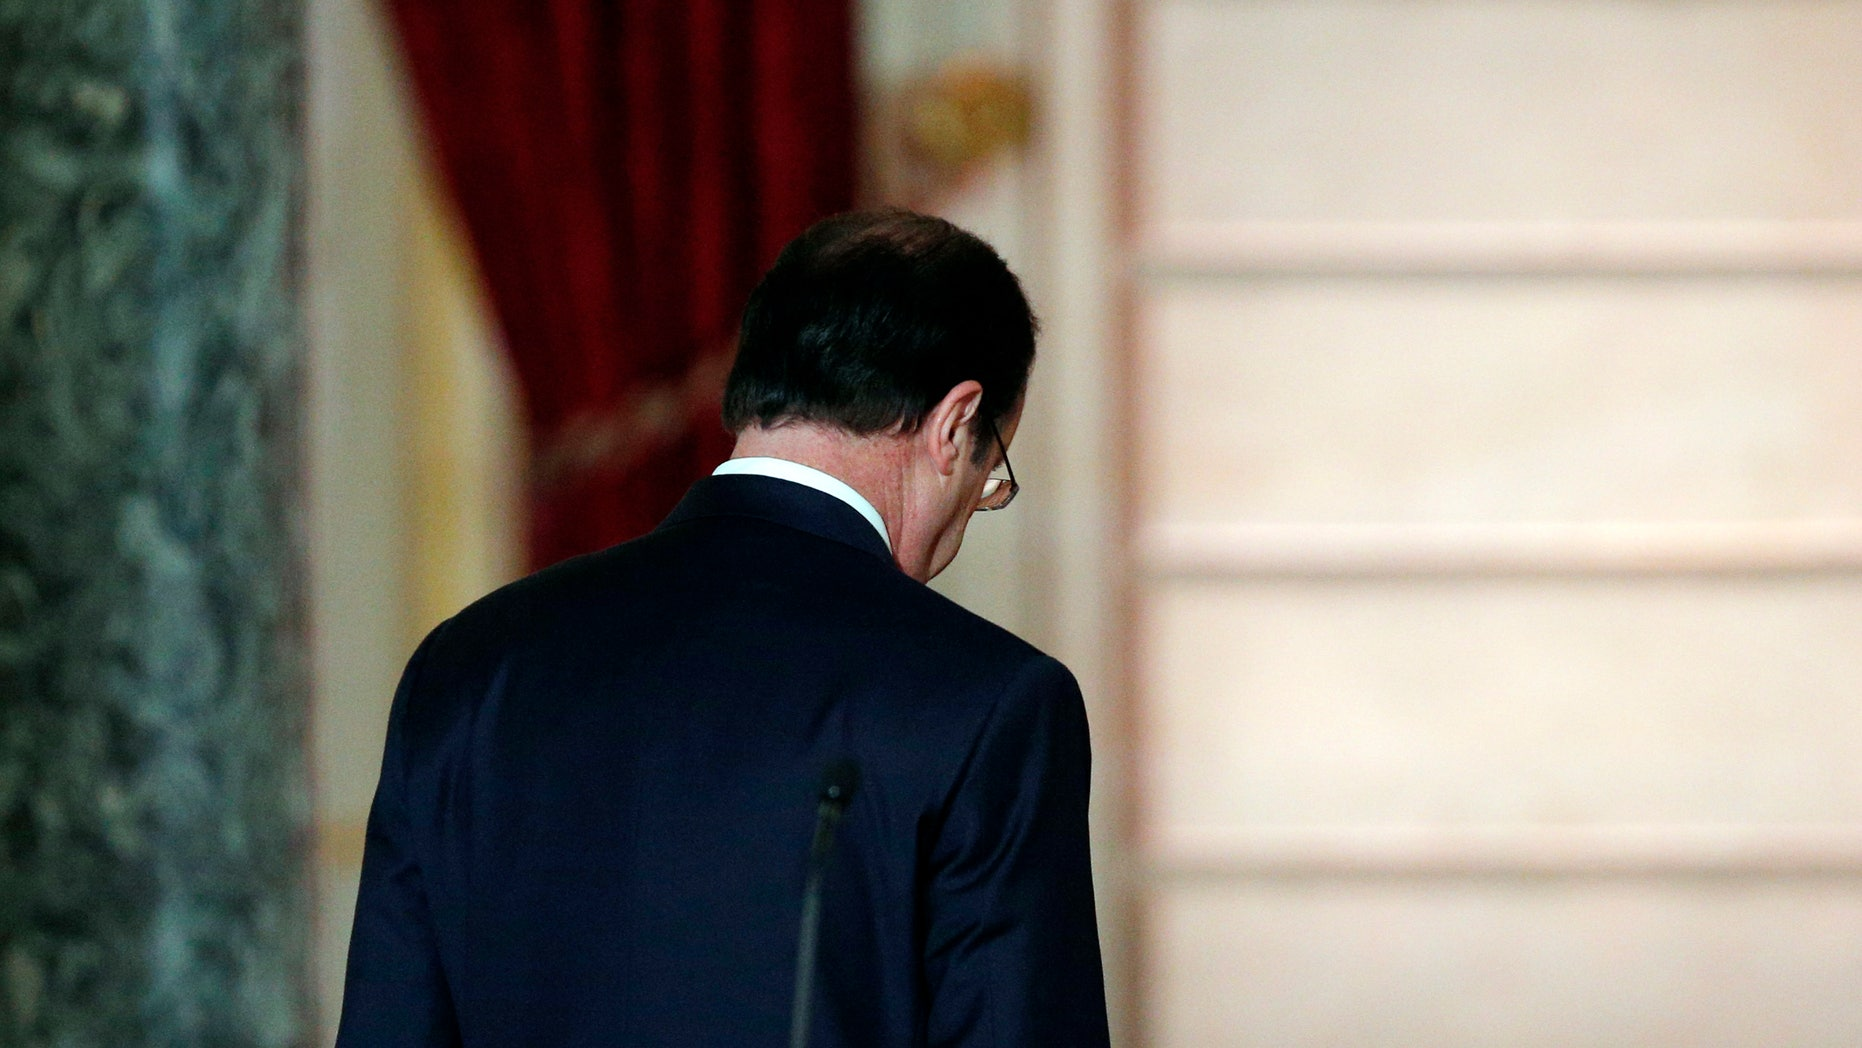 French President Francois Hollande leaves after his annual news conference, Tuesday, Jan.14, 2014 at the Elysee Palace in Paris. Hollande is promising to cut 50 billion euros in public spending over 2015-2017 to try to improve the indebted economy. Hollande, a Socialist, came to office in 2012 on pledges to avoid the painful austerity measures carried out by neighboring Spain and Italy. But France's economy has suffered two recessions in recent years and growth is forecast at an anemic 0.2 percent in 2013. (AP Photo/Christophe Ena)